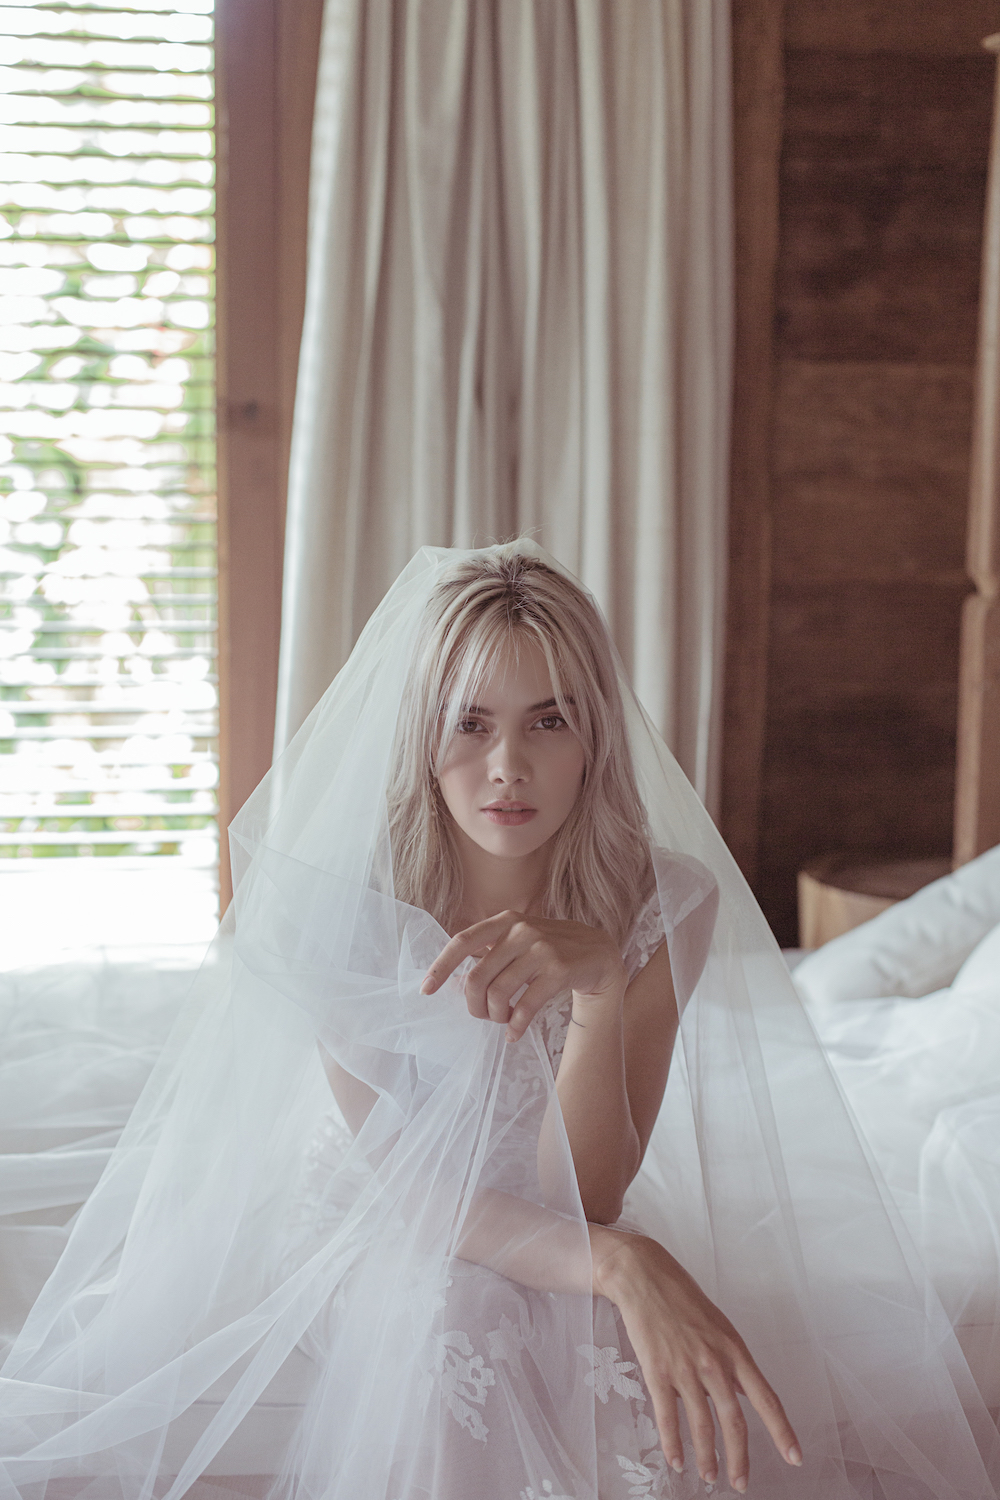 Rio Jumpsuit & Skirt by Oui The Label 2018 Stolen Moments Bridal Collection featured on LOVE FIND CO.